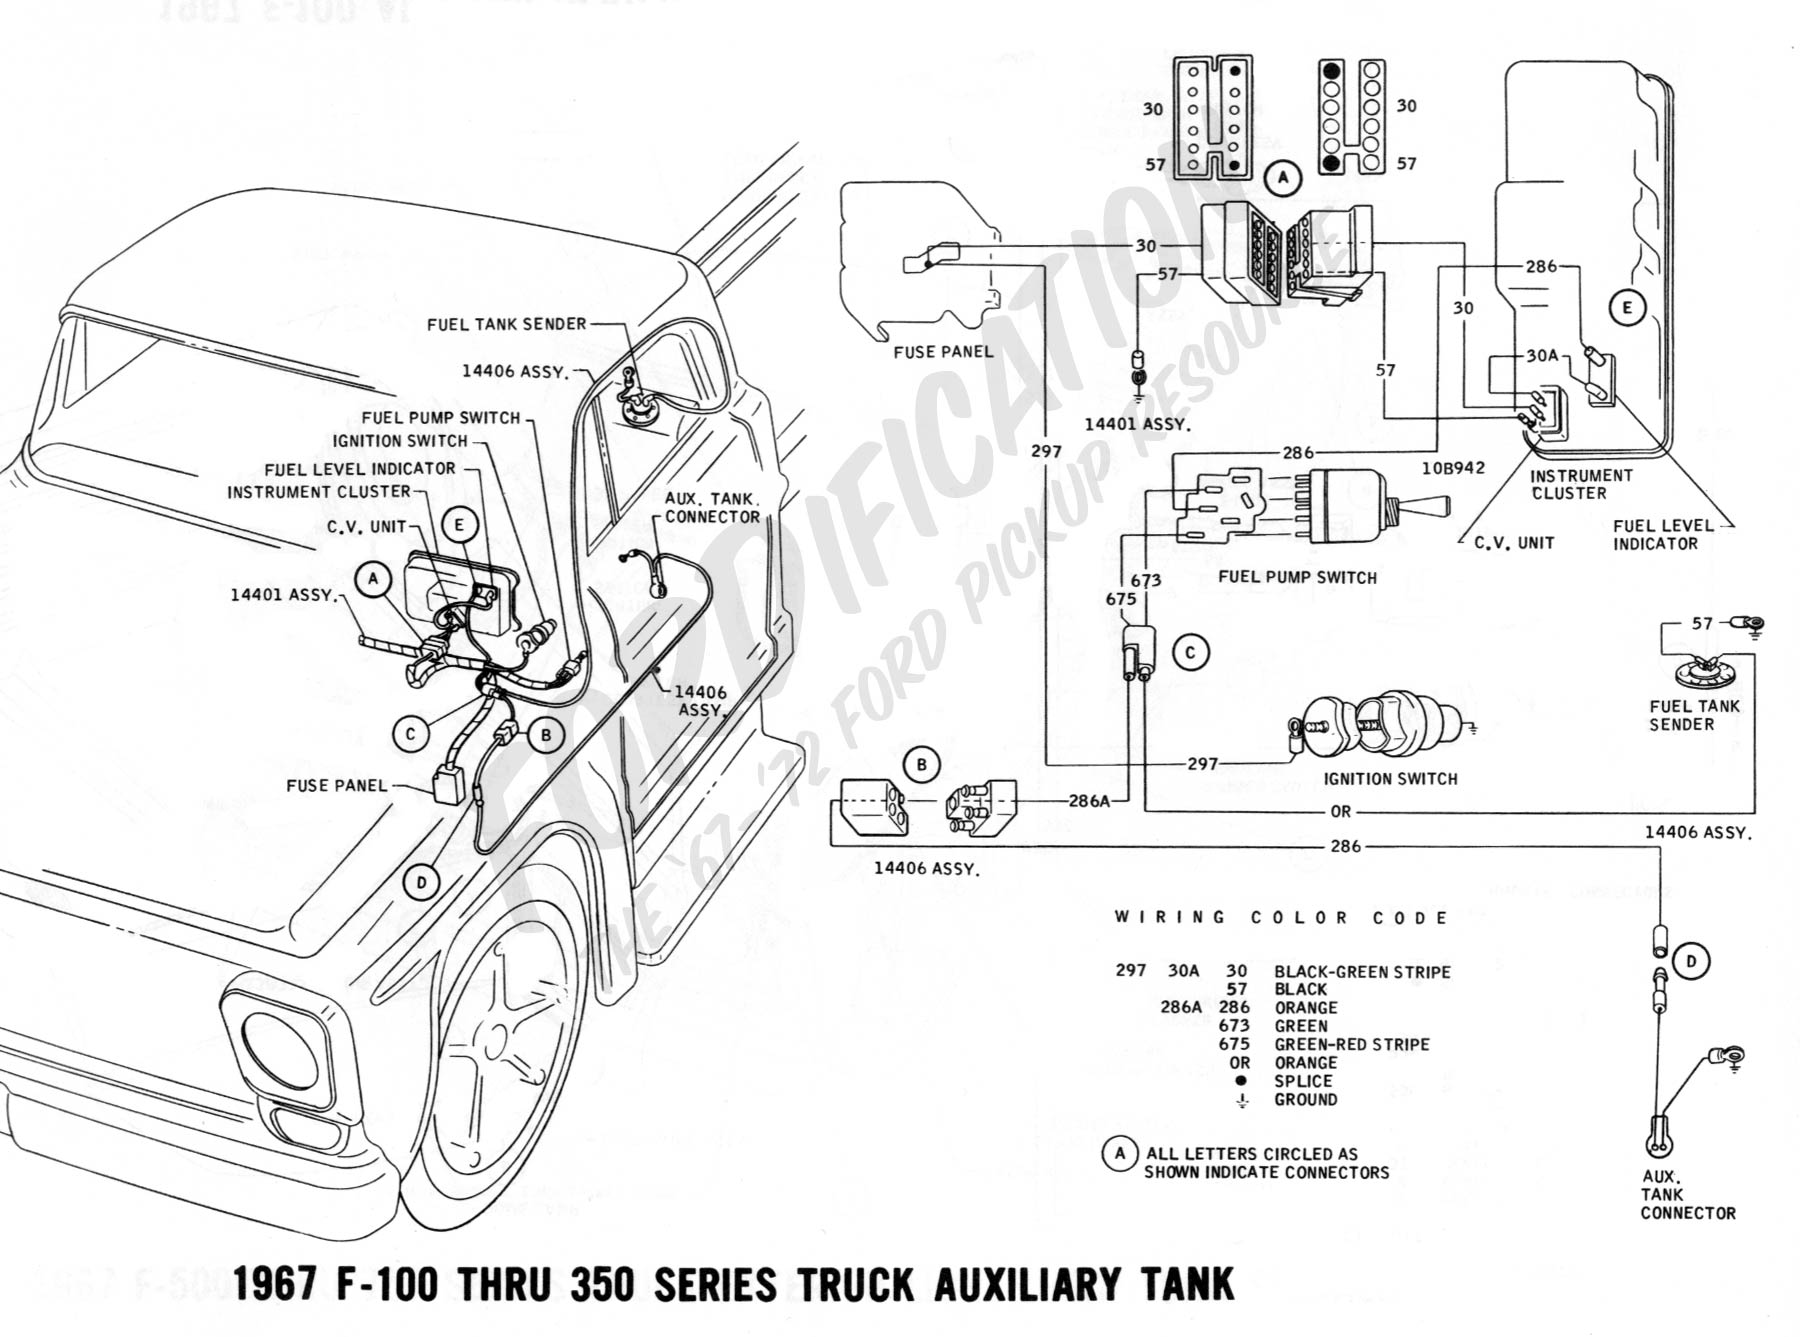 1994 Ford Ranger Fuel System Diagram Wiring Diagram View A View A Zaafran It